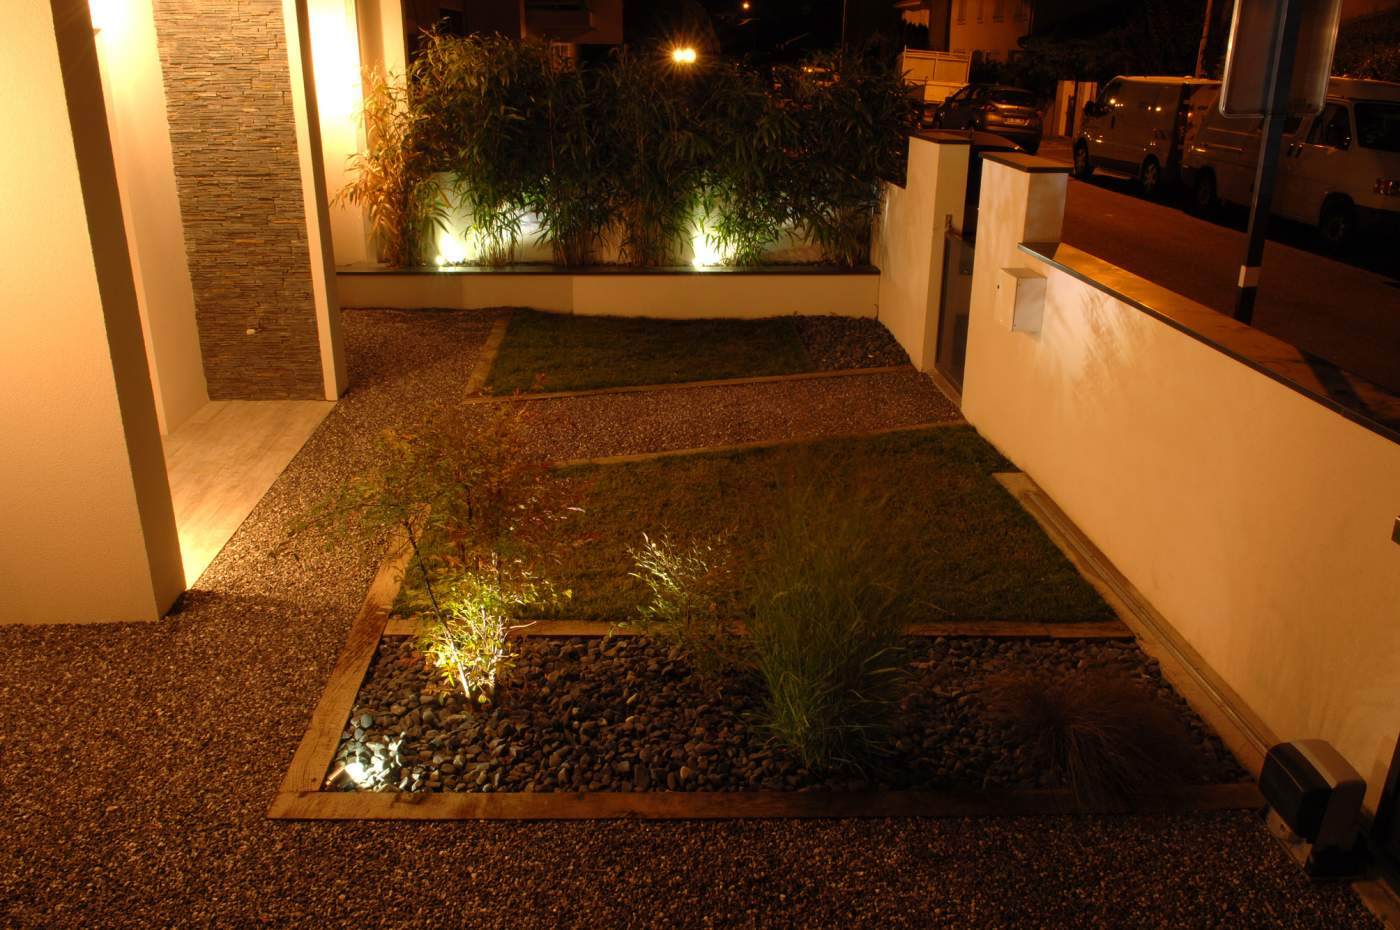 Clairage ext rieur all e eclairage ext rieur for Eclairage led exterieur de jardin